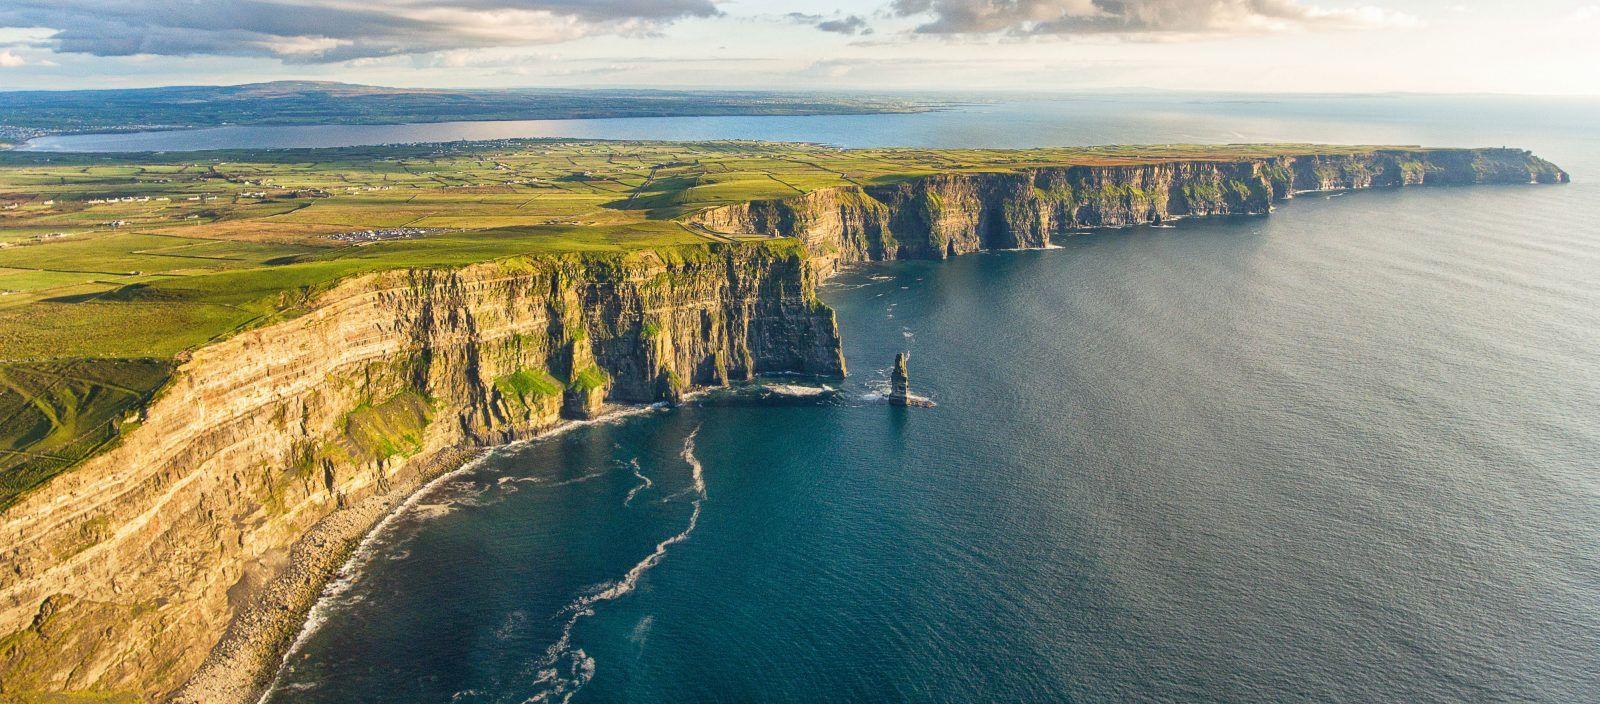 Ireland: Tales & Treasures of the Emerald Isles